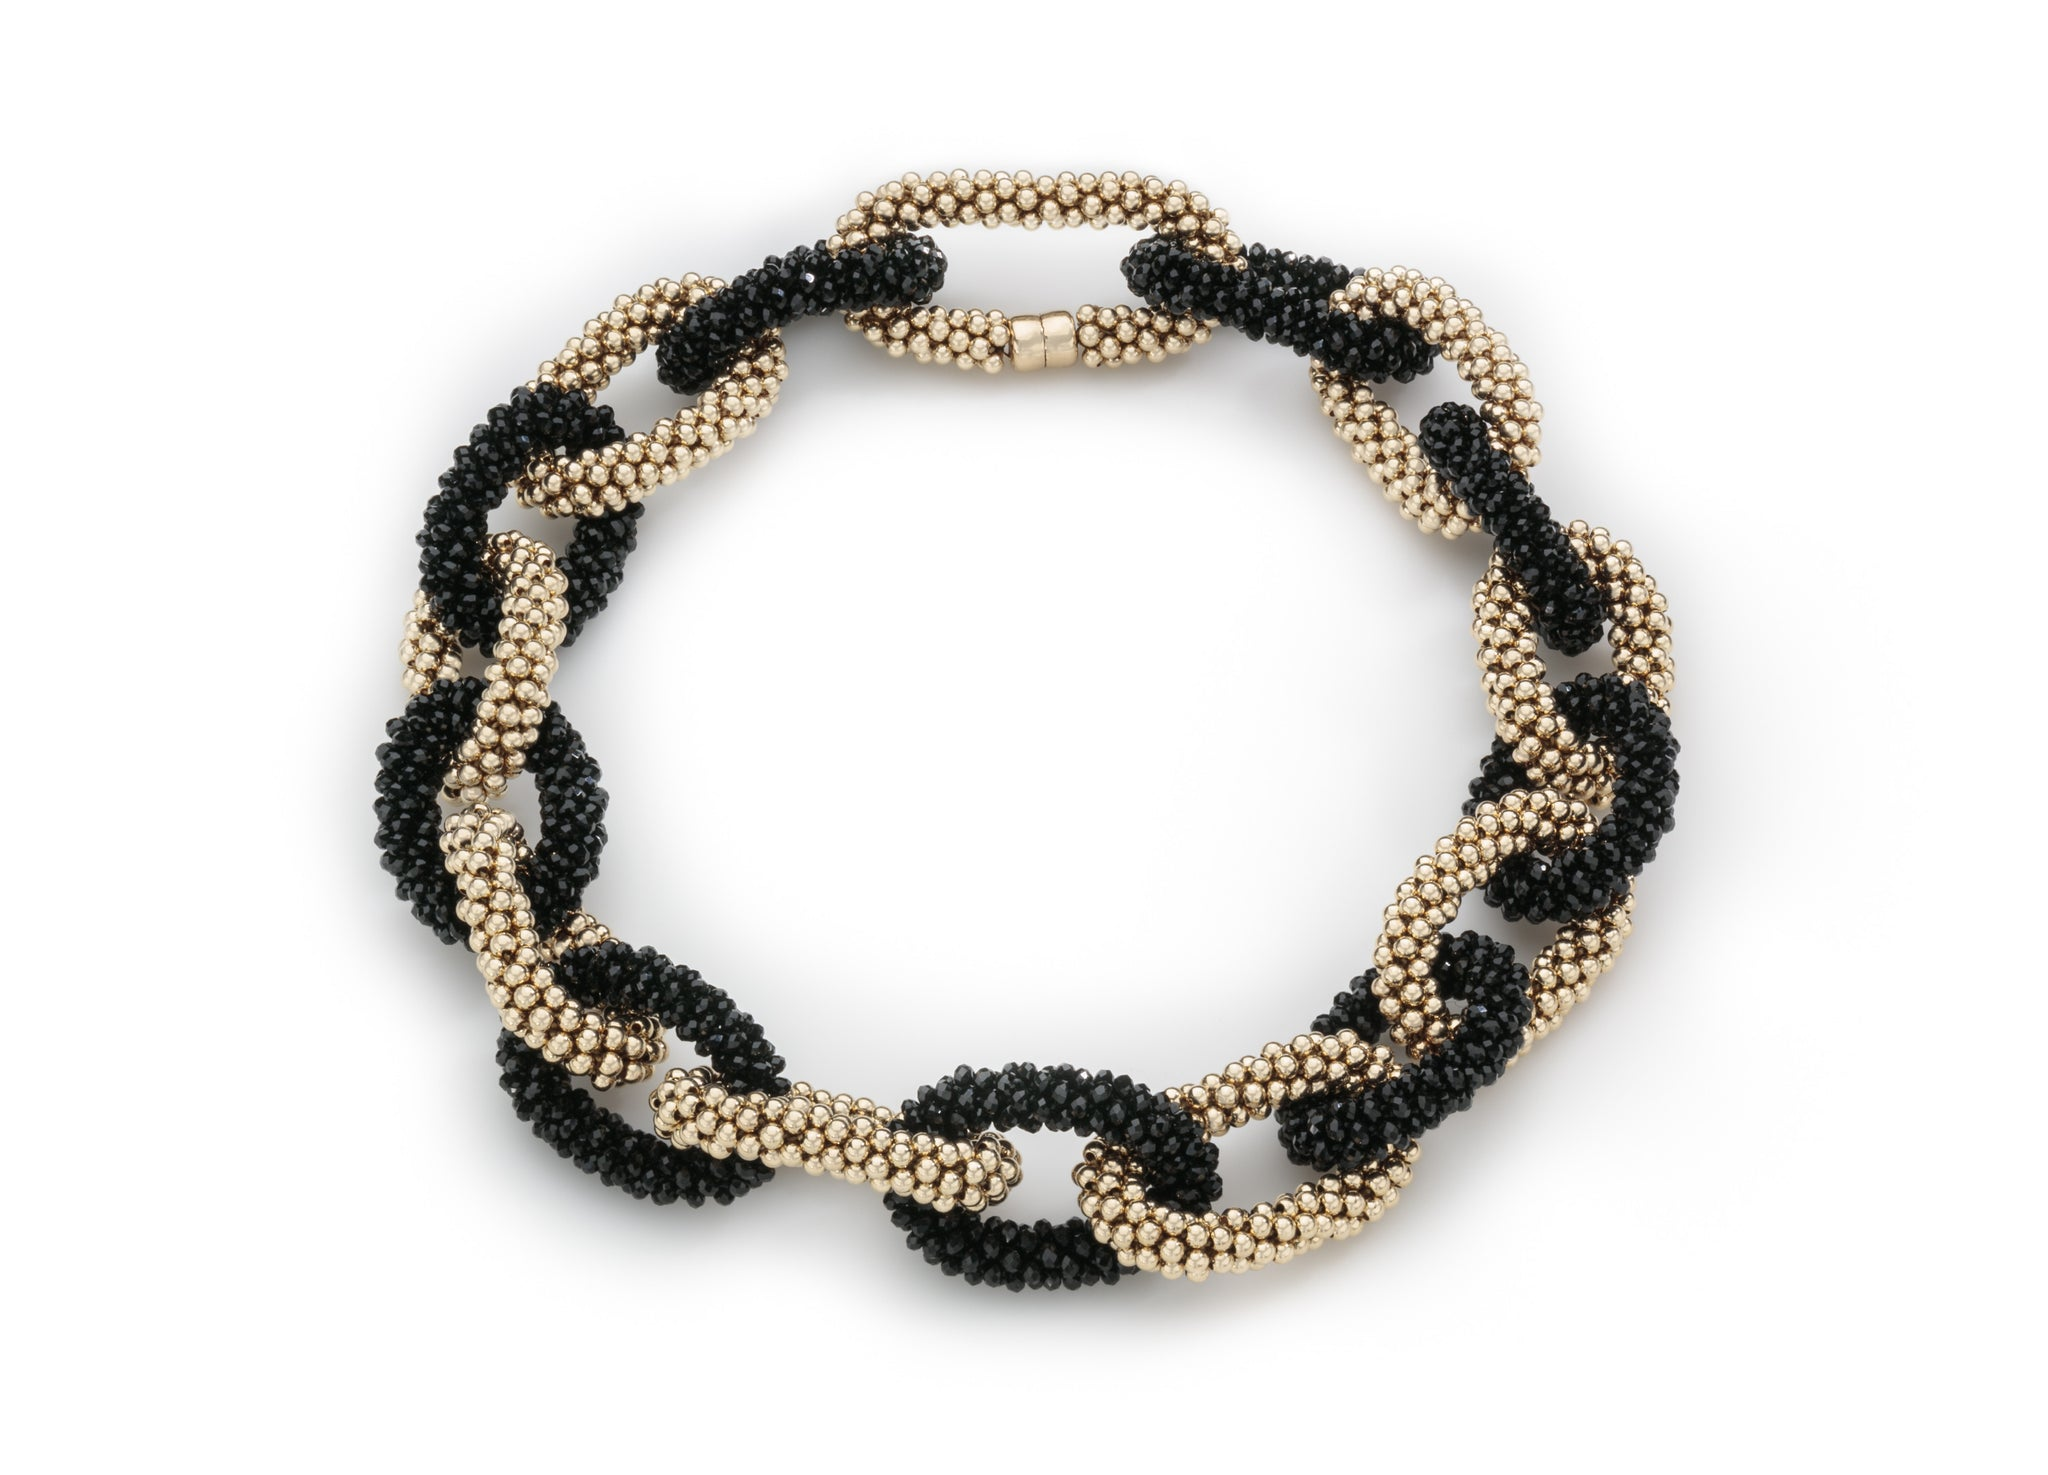 A Black Crystal and Gold Linkable Necklace